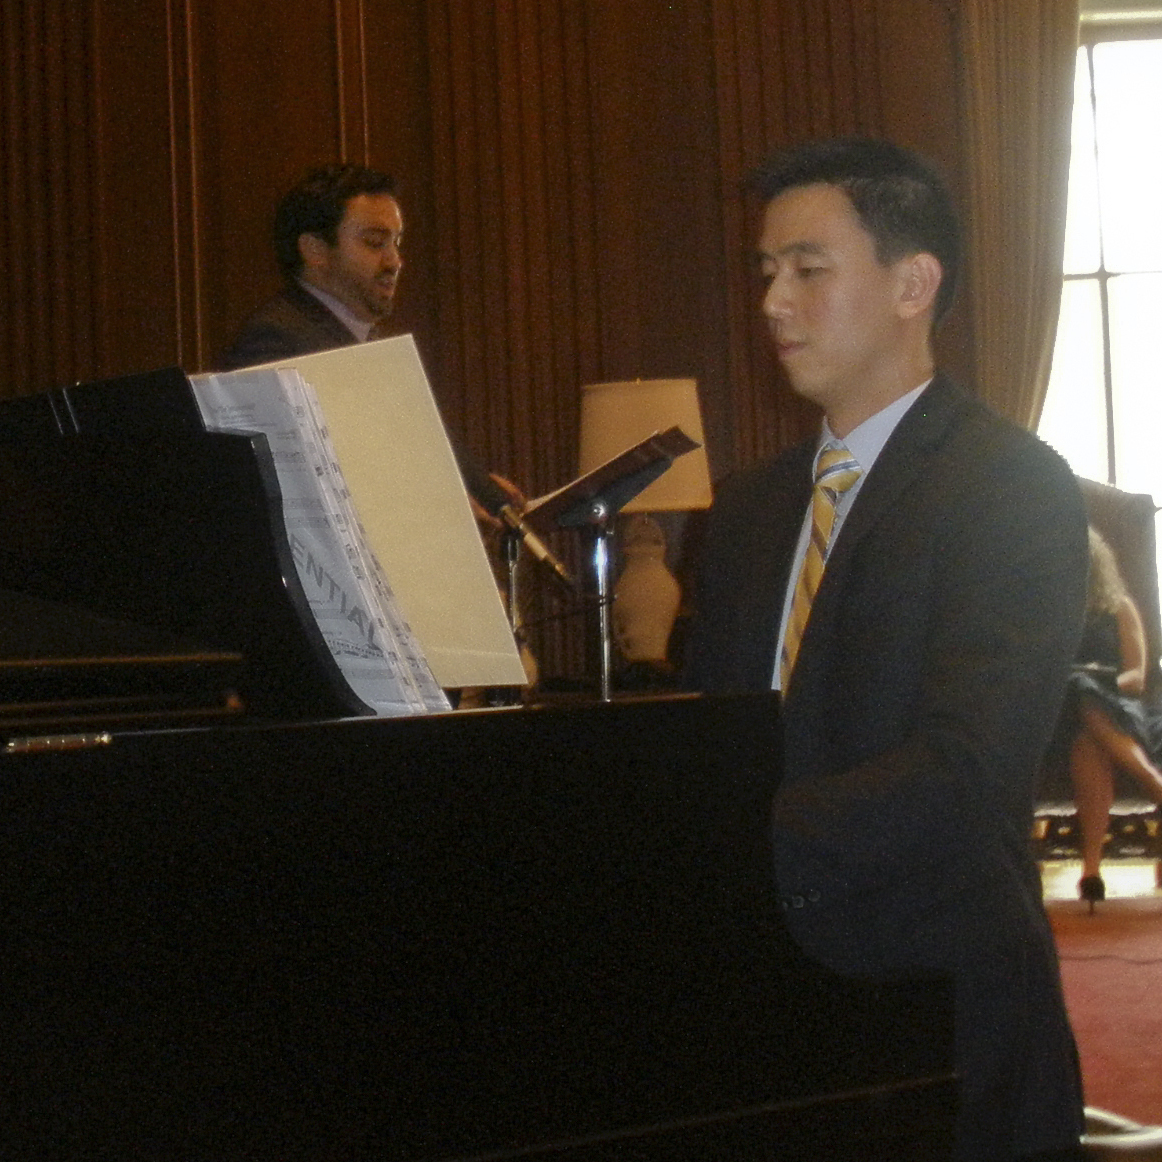 Derrick Wang, pianist and composer, and Peter Scott Drackley, tenor, perform a preview of the opera Scalia/Ginsburg.